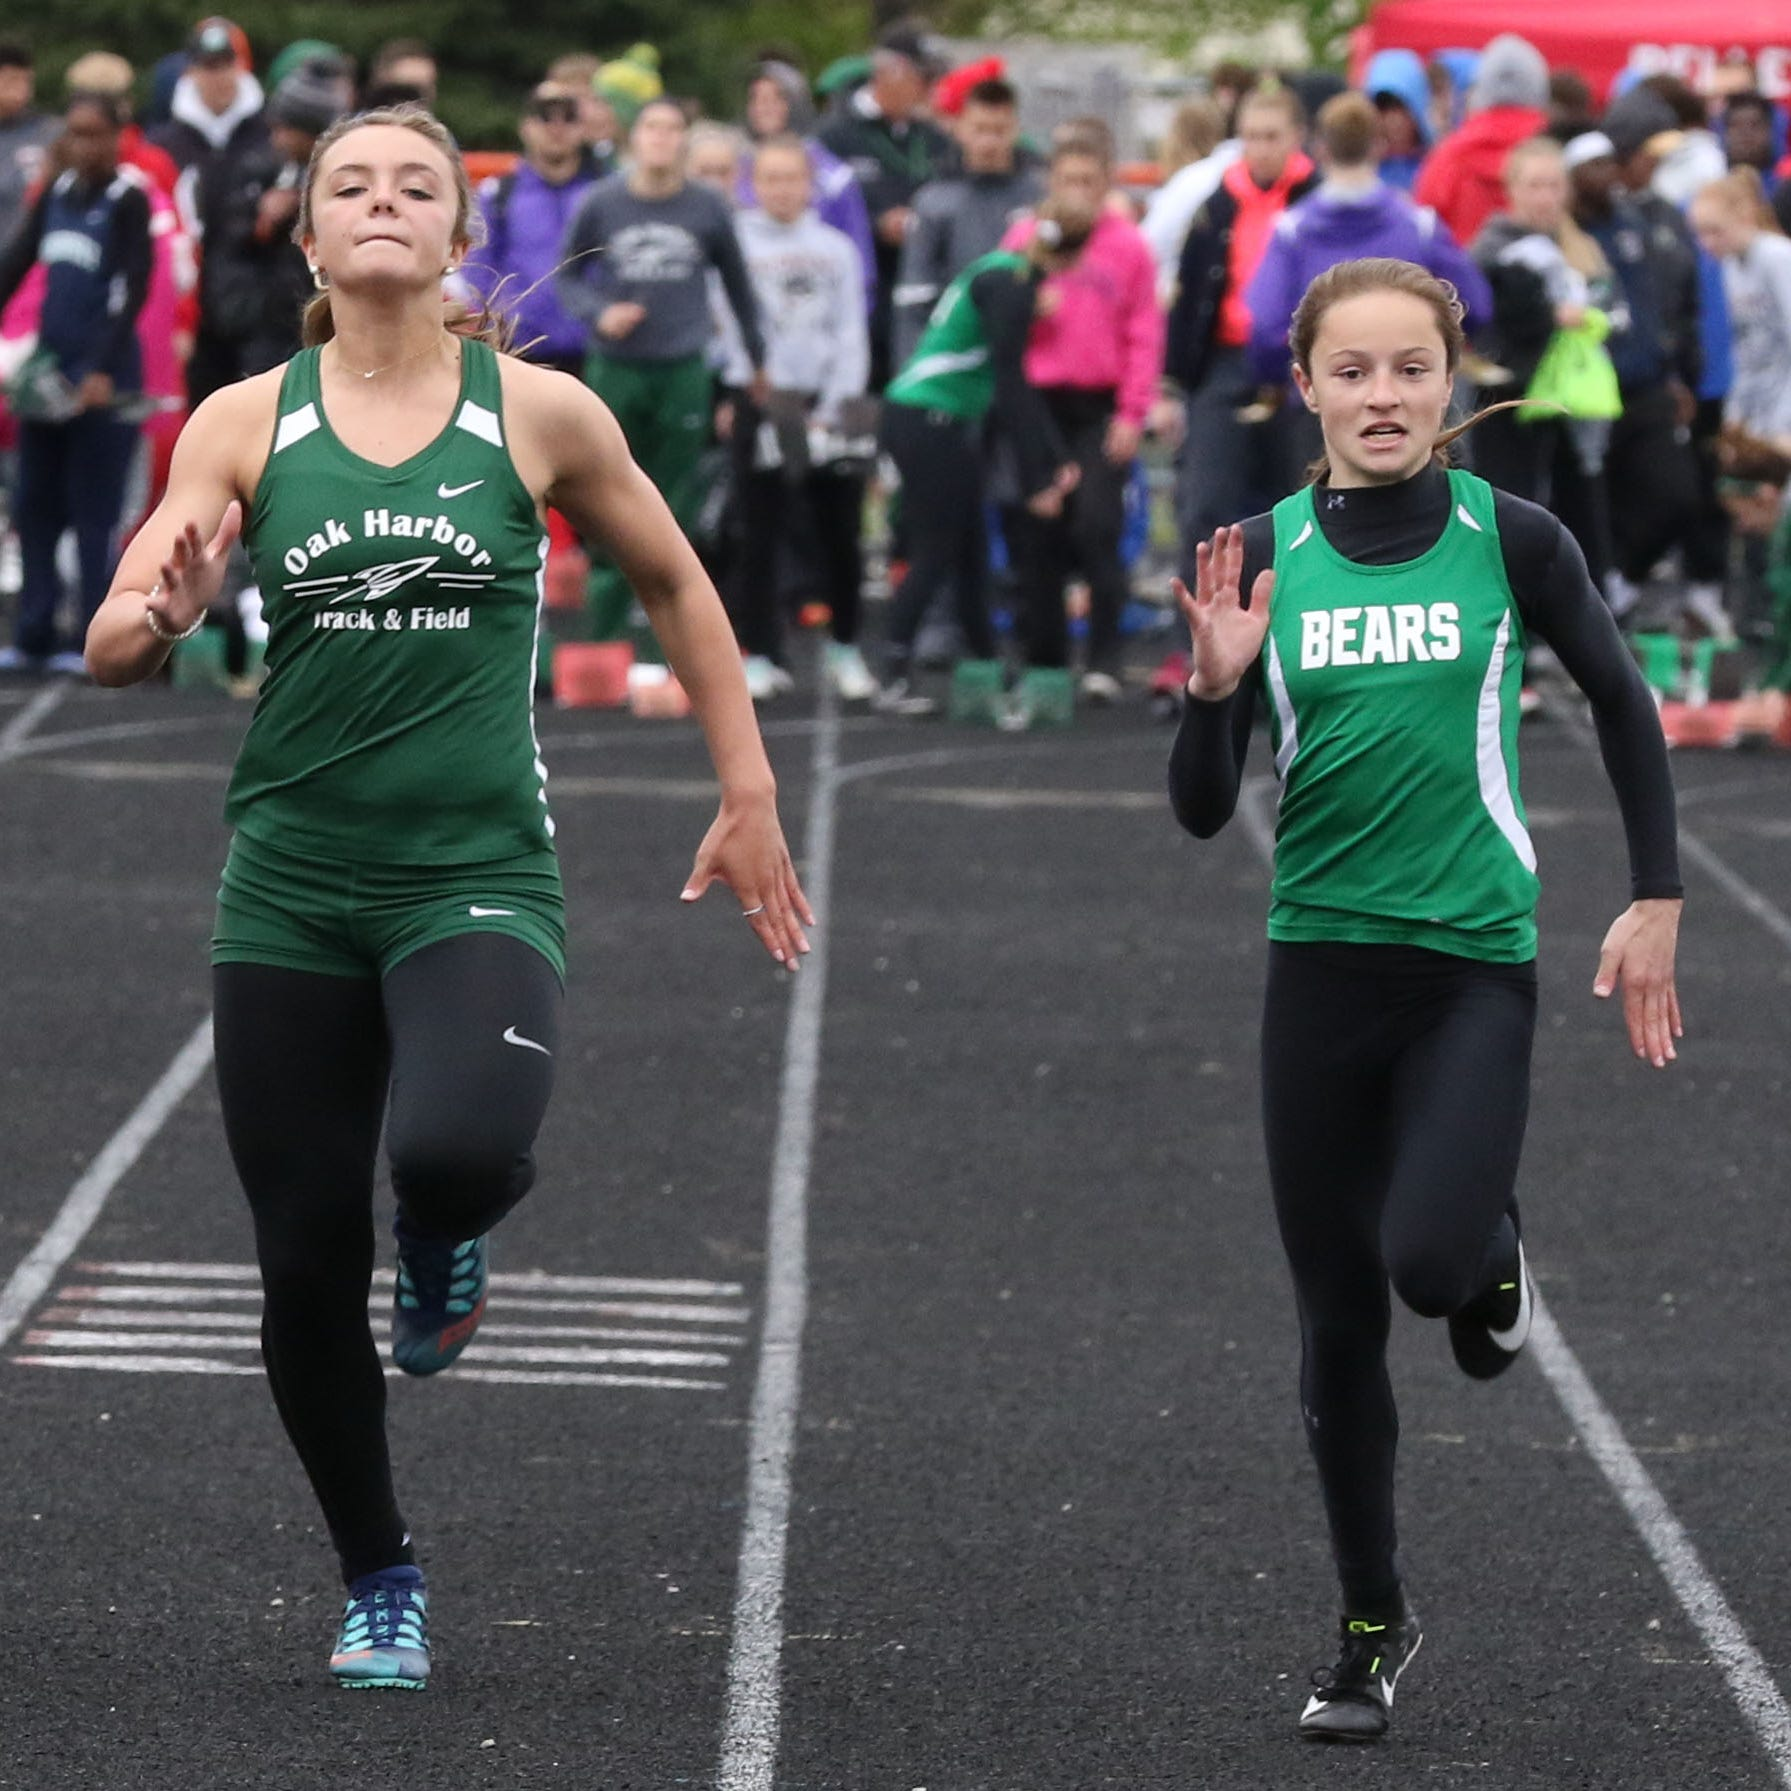 Oak Harbor girls 4x400 relay scorches district